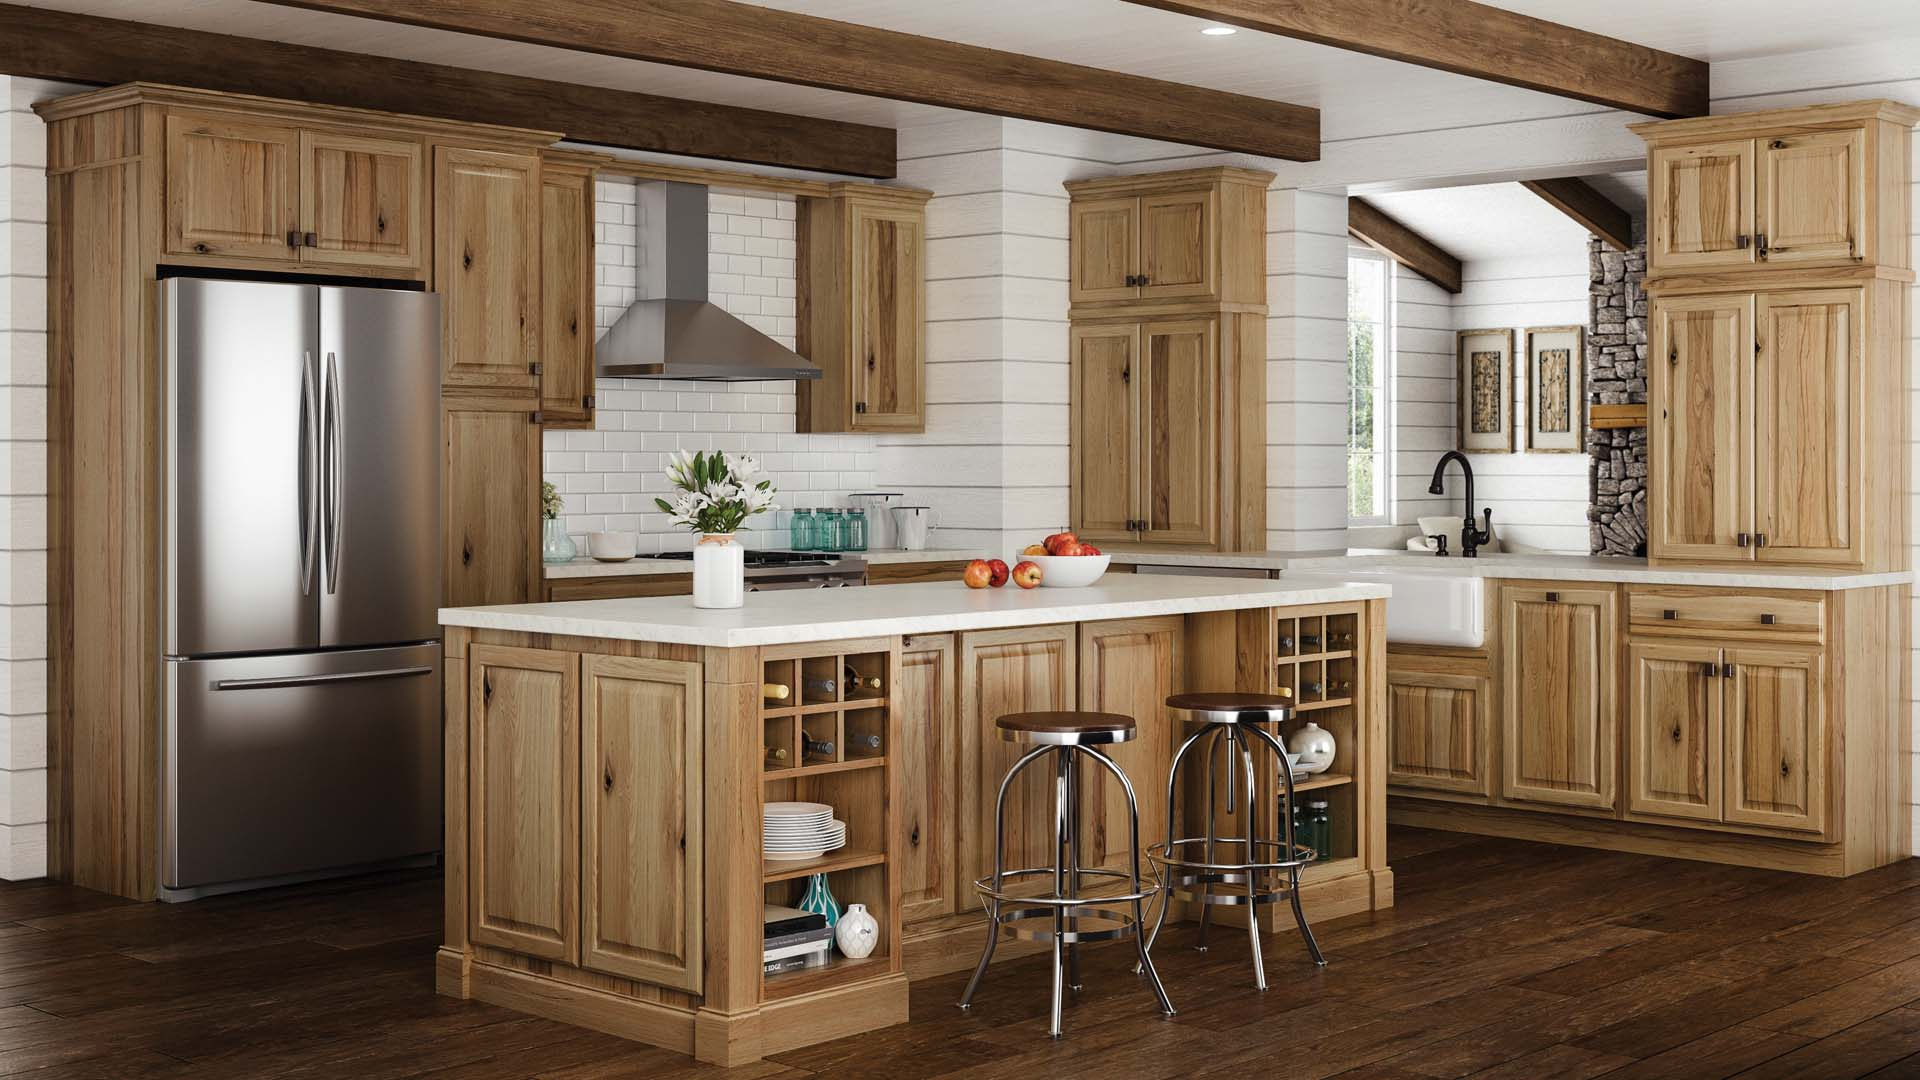 Hampton Bath Cabinets In Natural Hickory Kitchen The